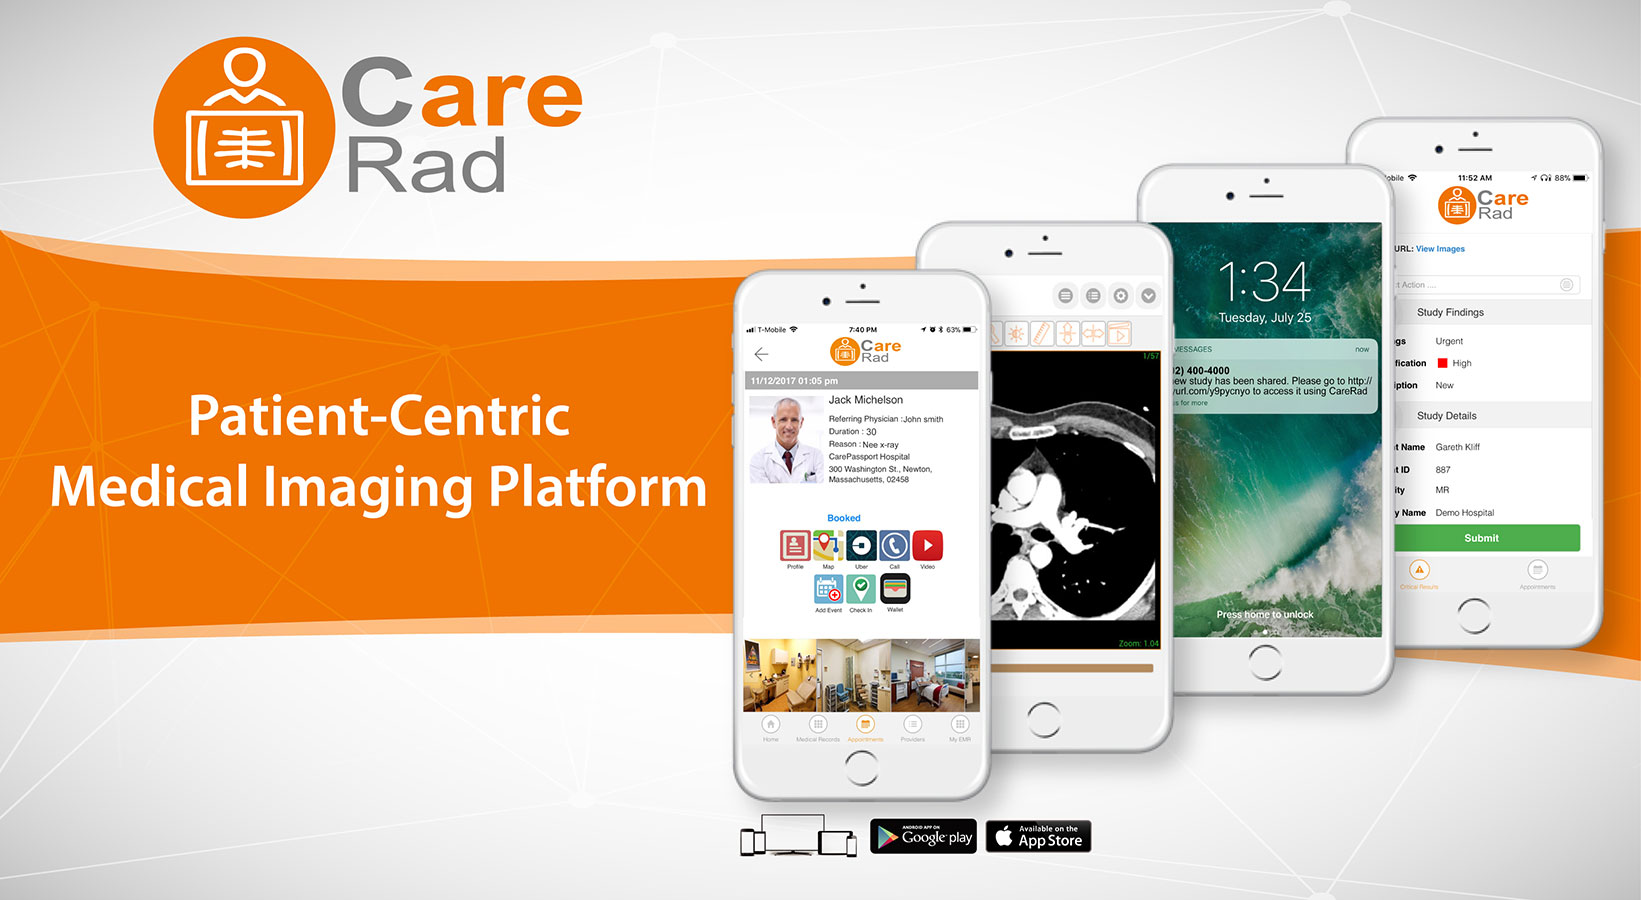 Patient-Centric Medical Imaging Platform